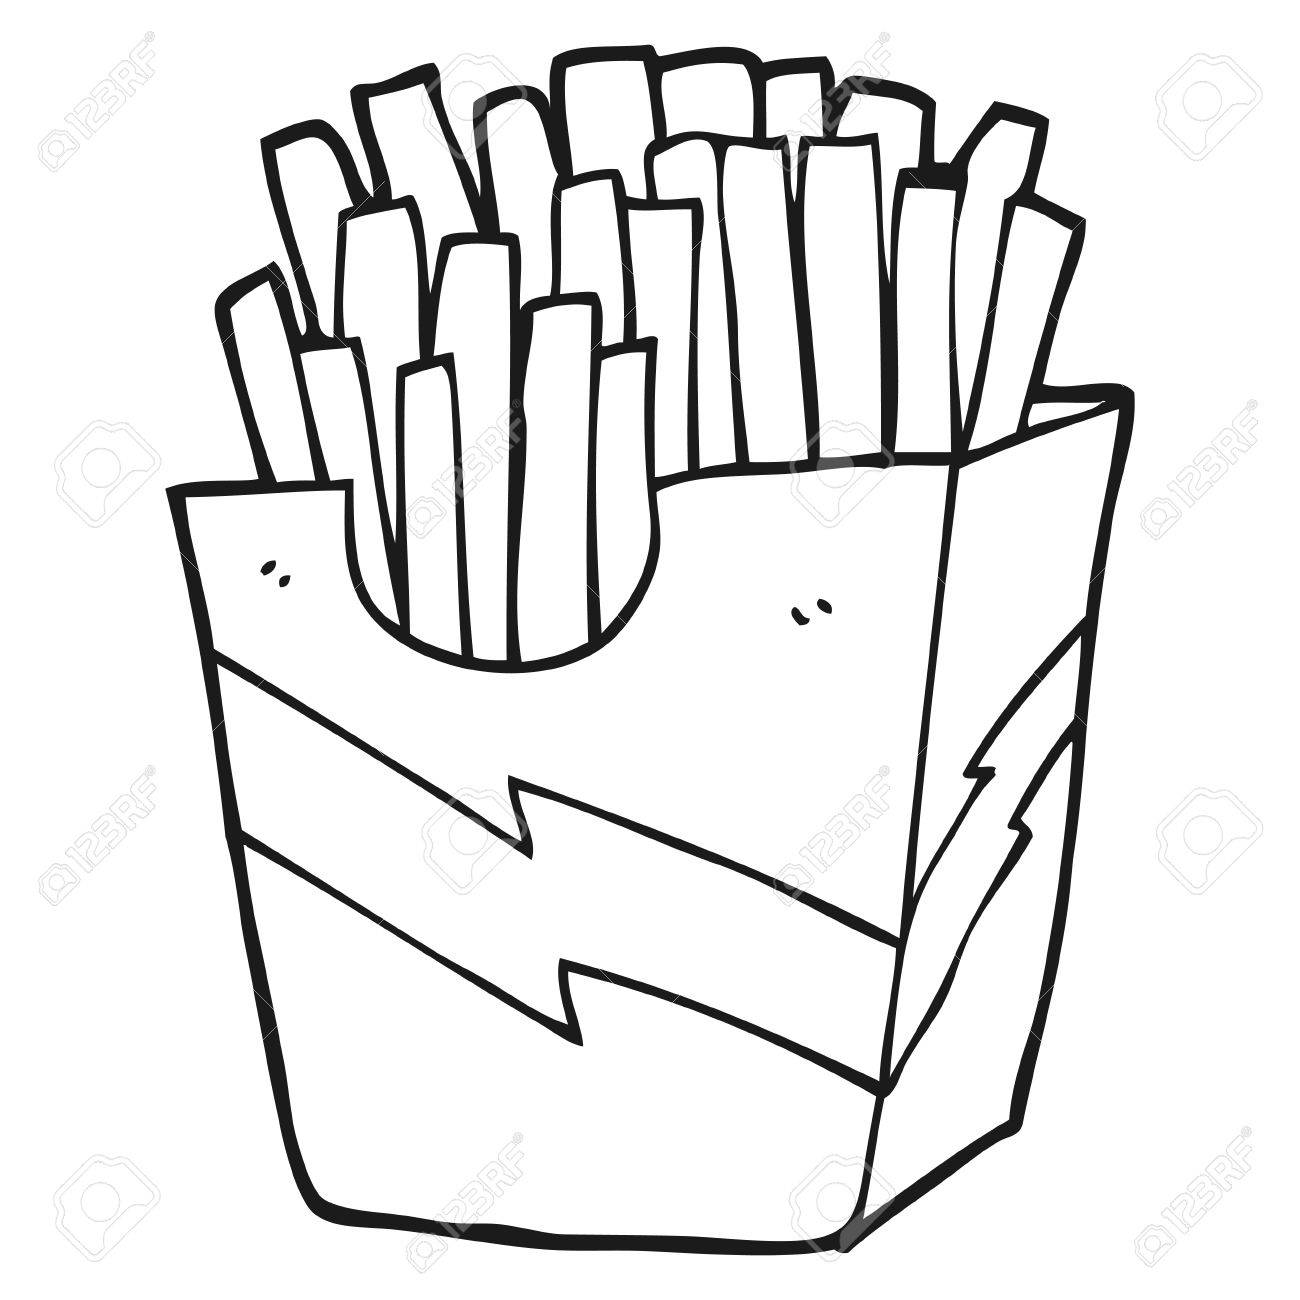 Fries black and white clipart banner black and white stock Black and white cartoon french fries » Clipart Station banner black and white stock